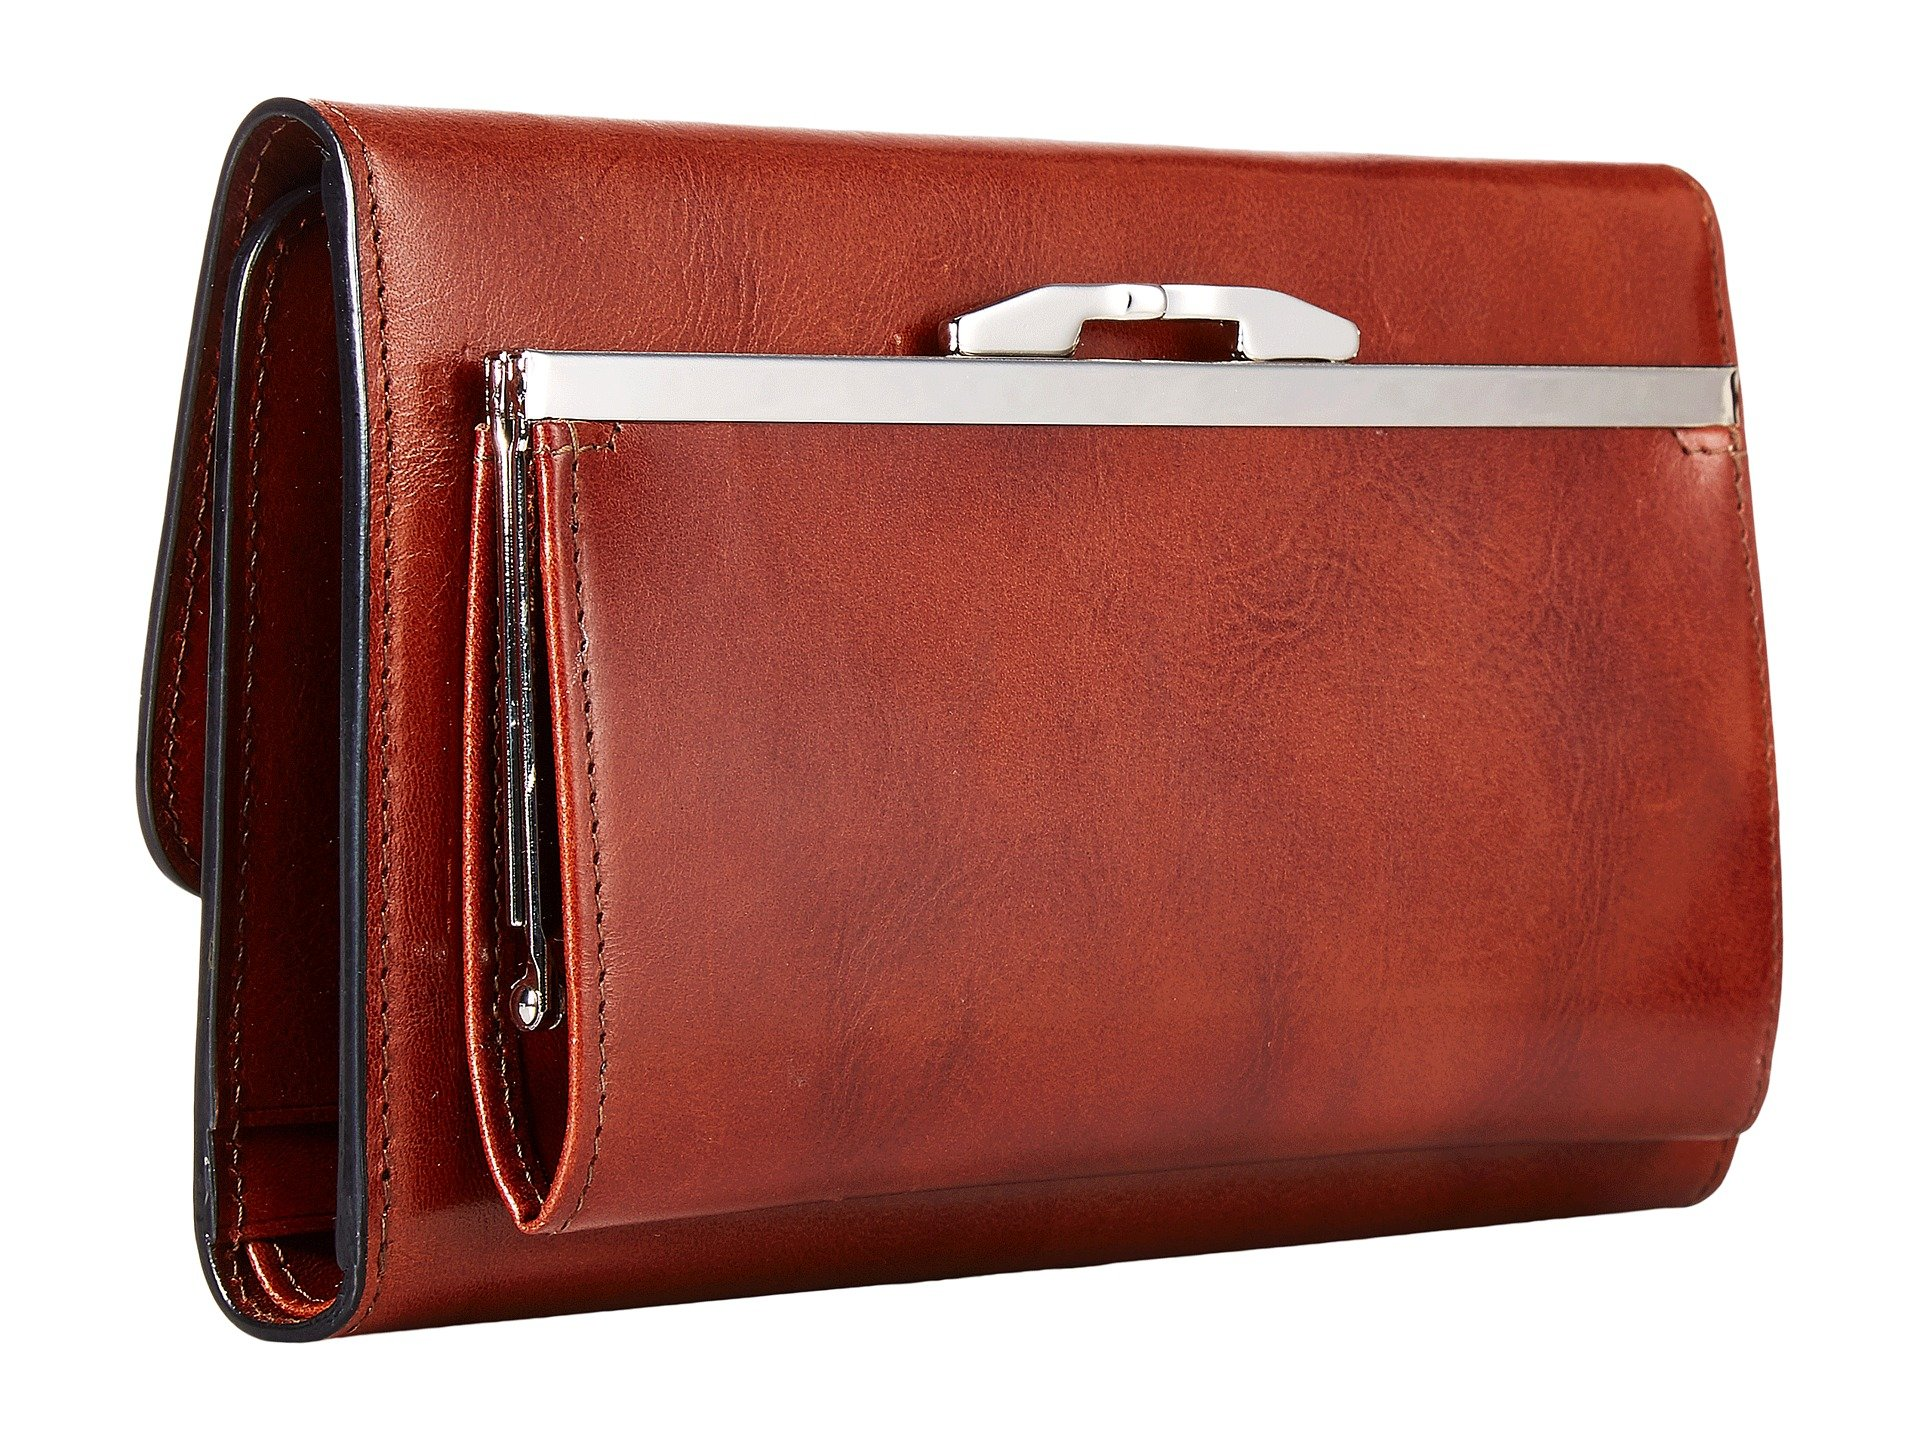 Amber Leather Old Bosca Clutch Checkbook gIqnx